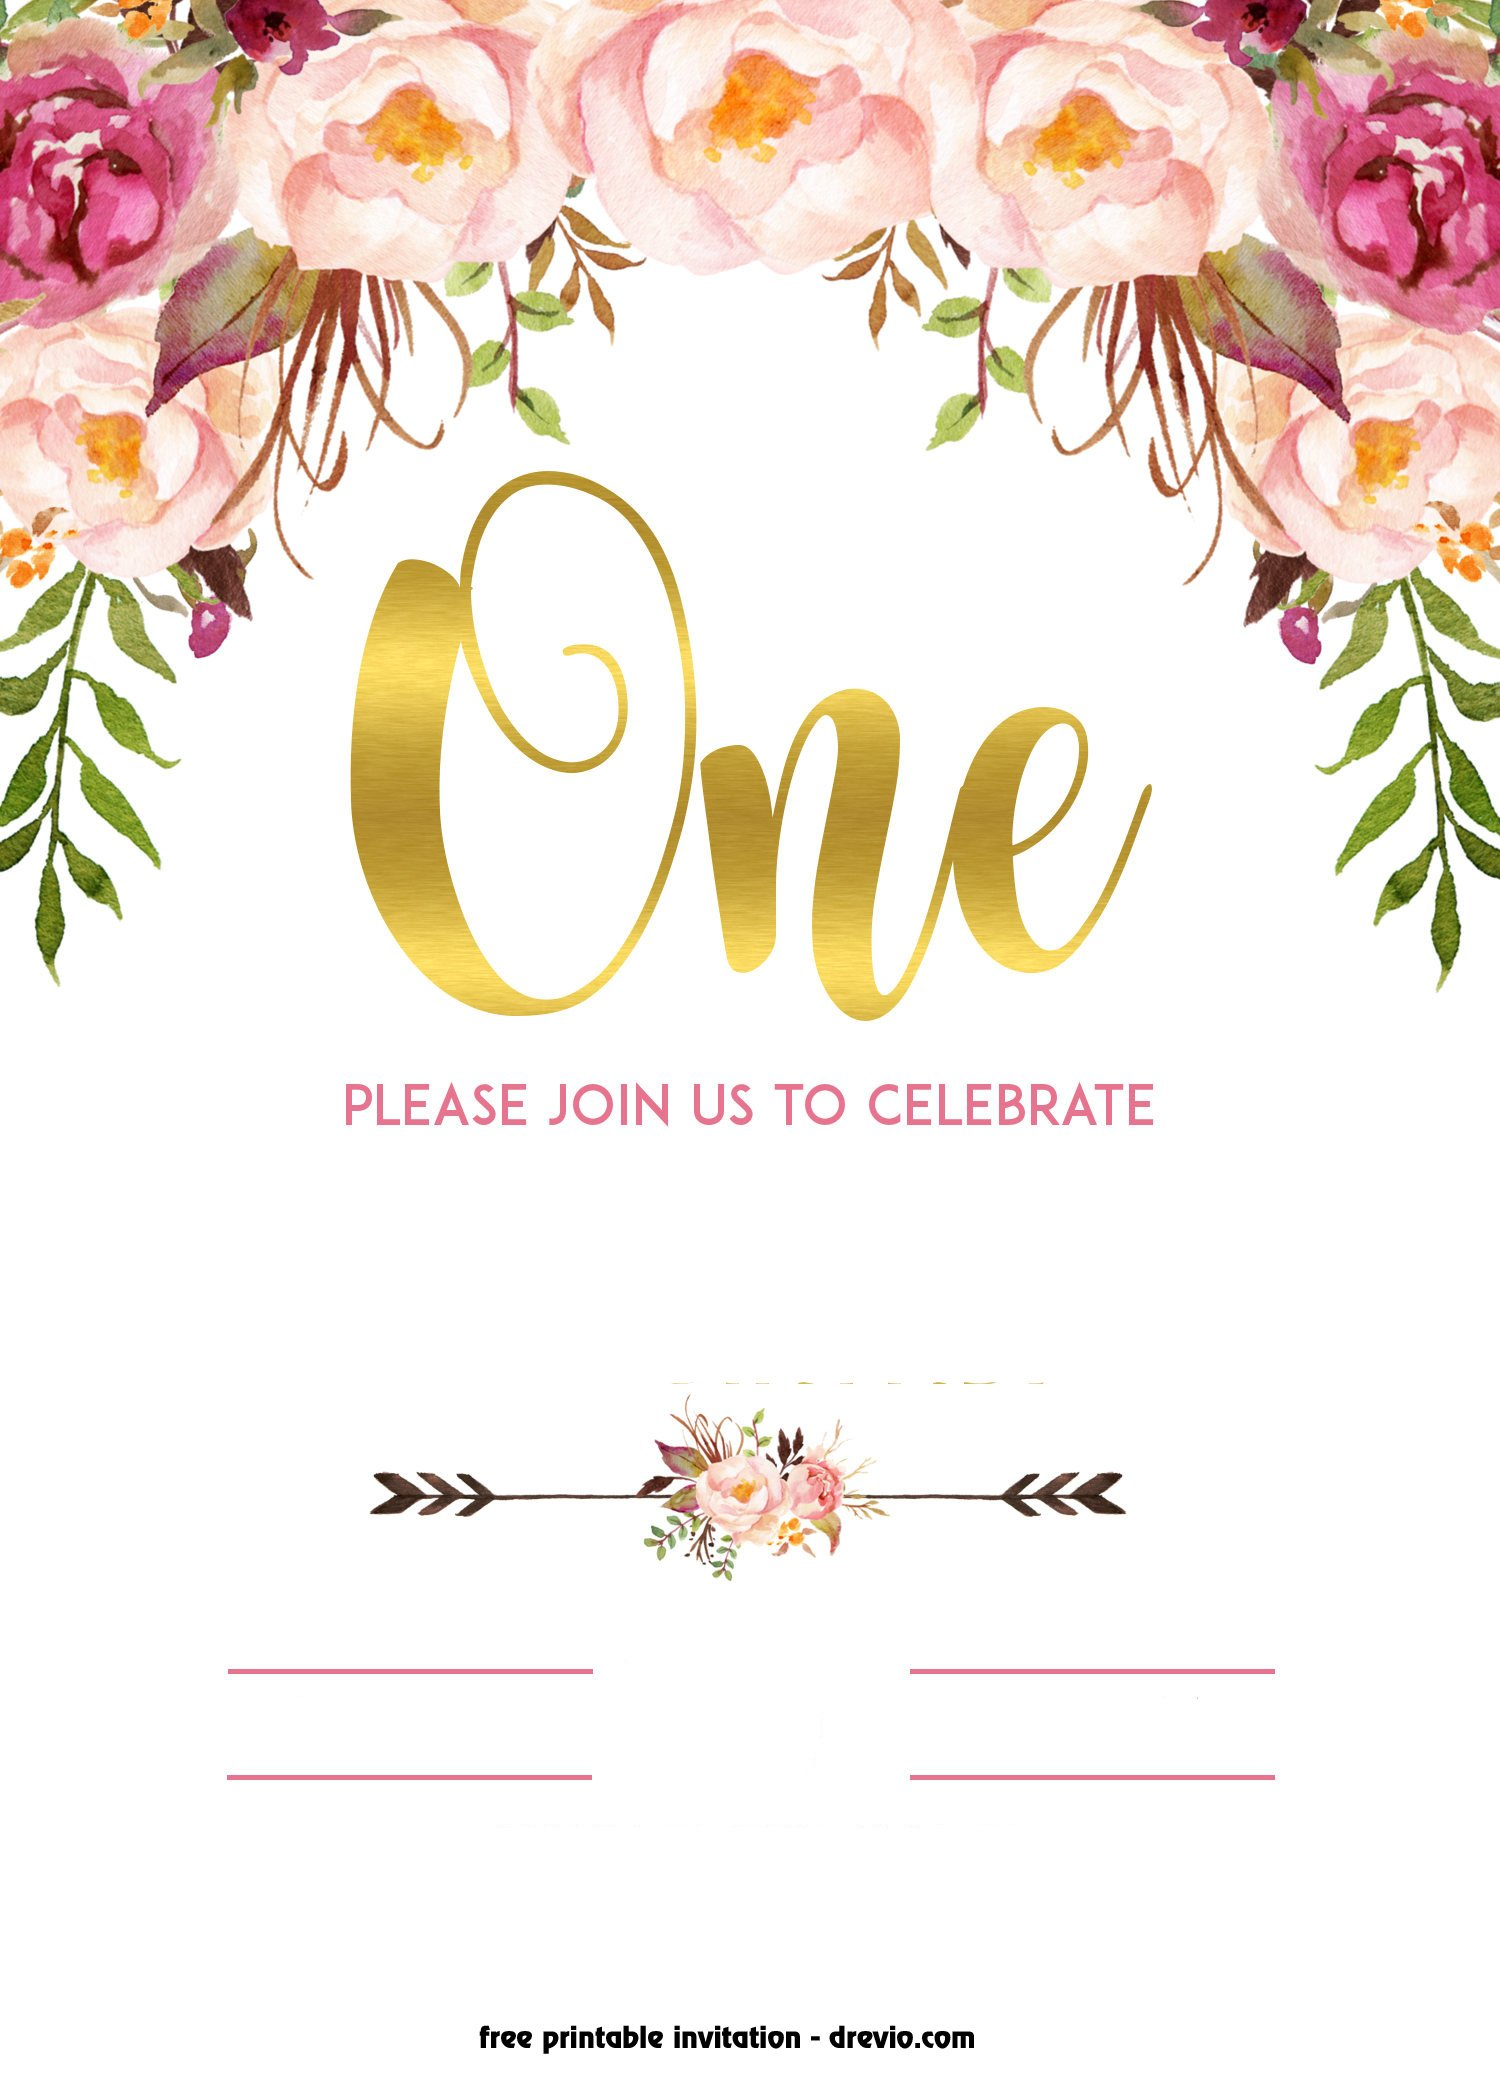 FREE Printable 1st Birthday Invitation – Vintage Style